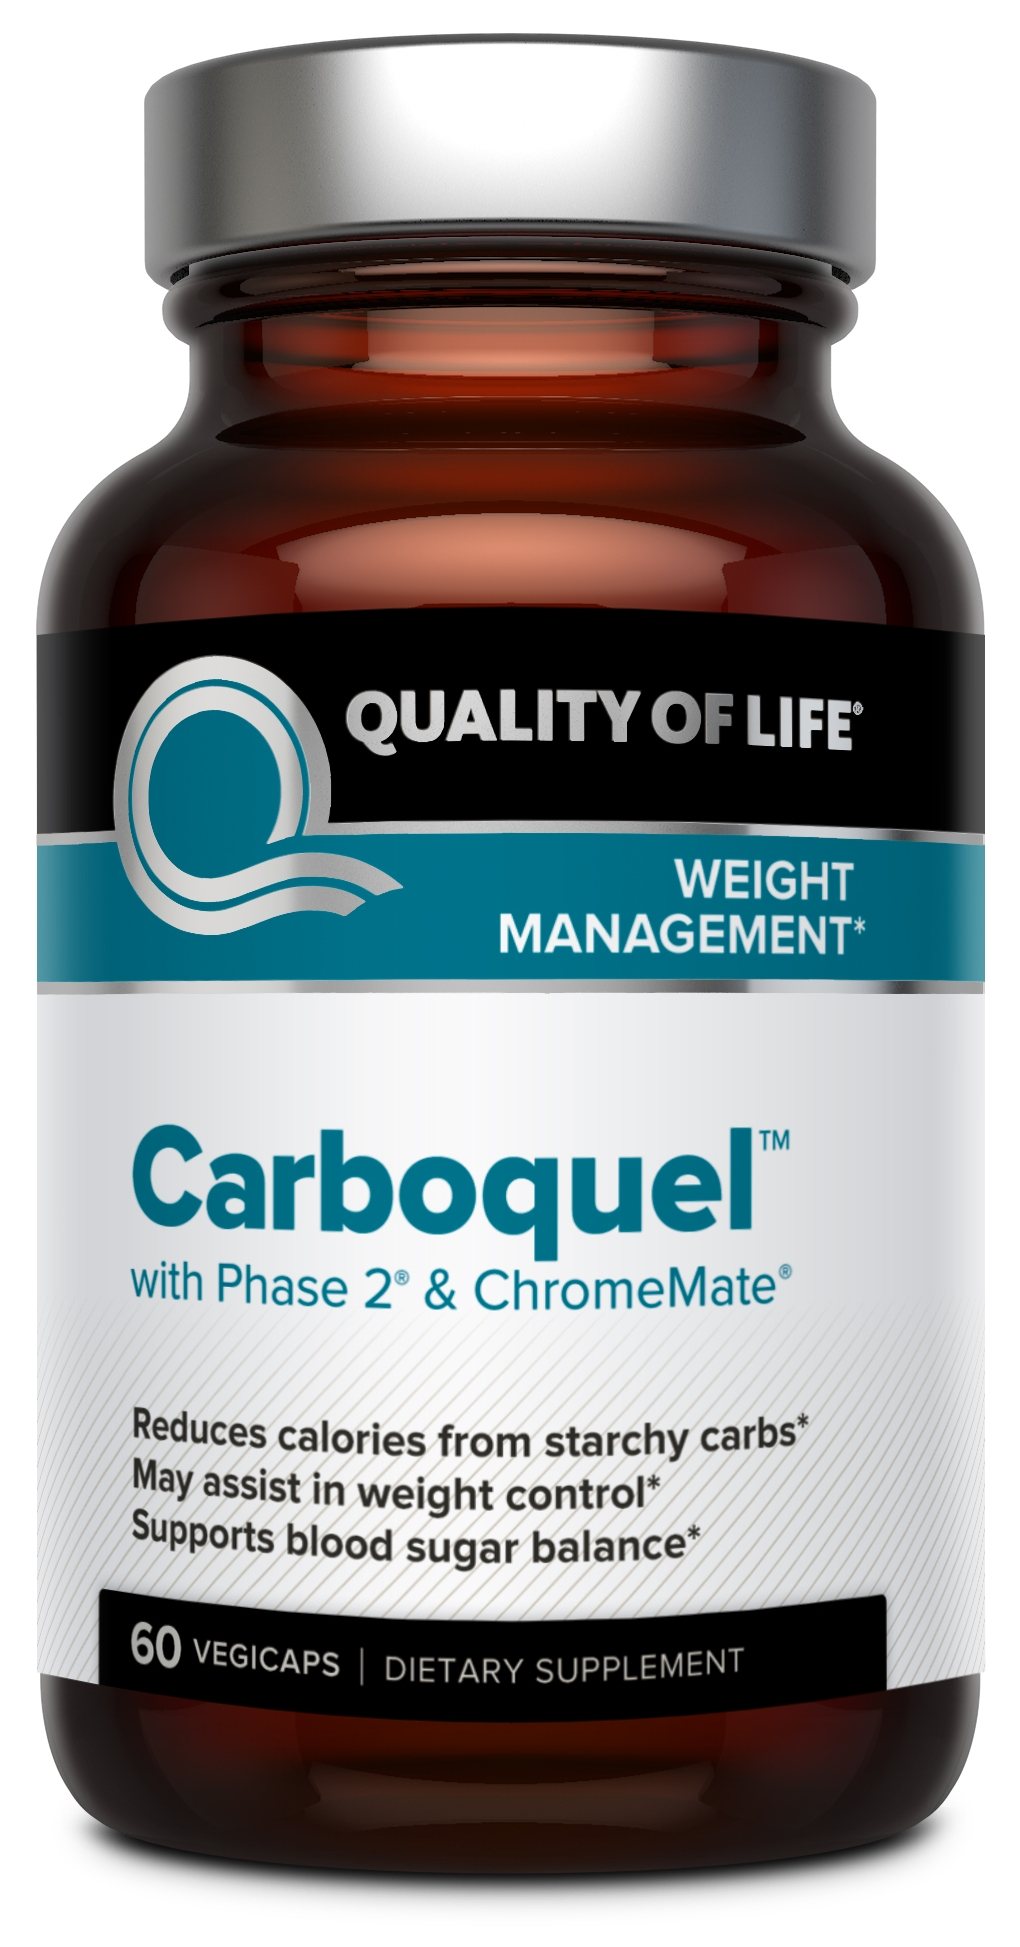 Carboquel 60 Vegicaps by Quality of Life Labs